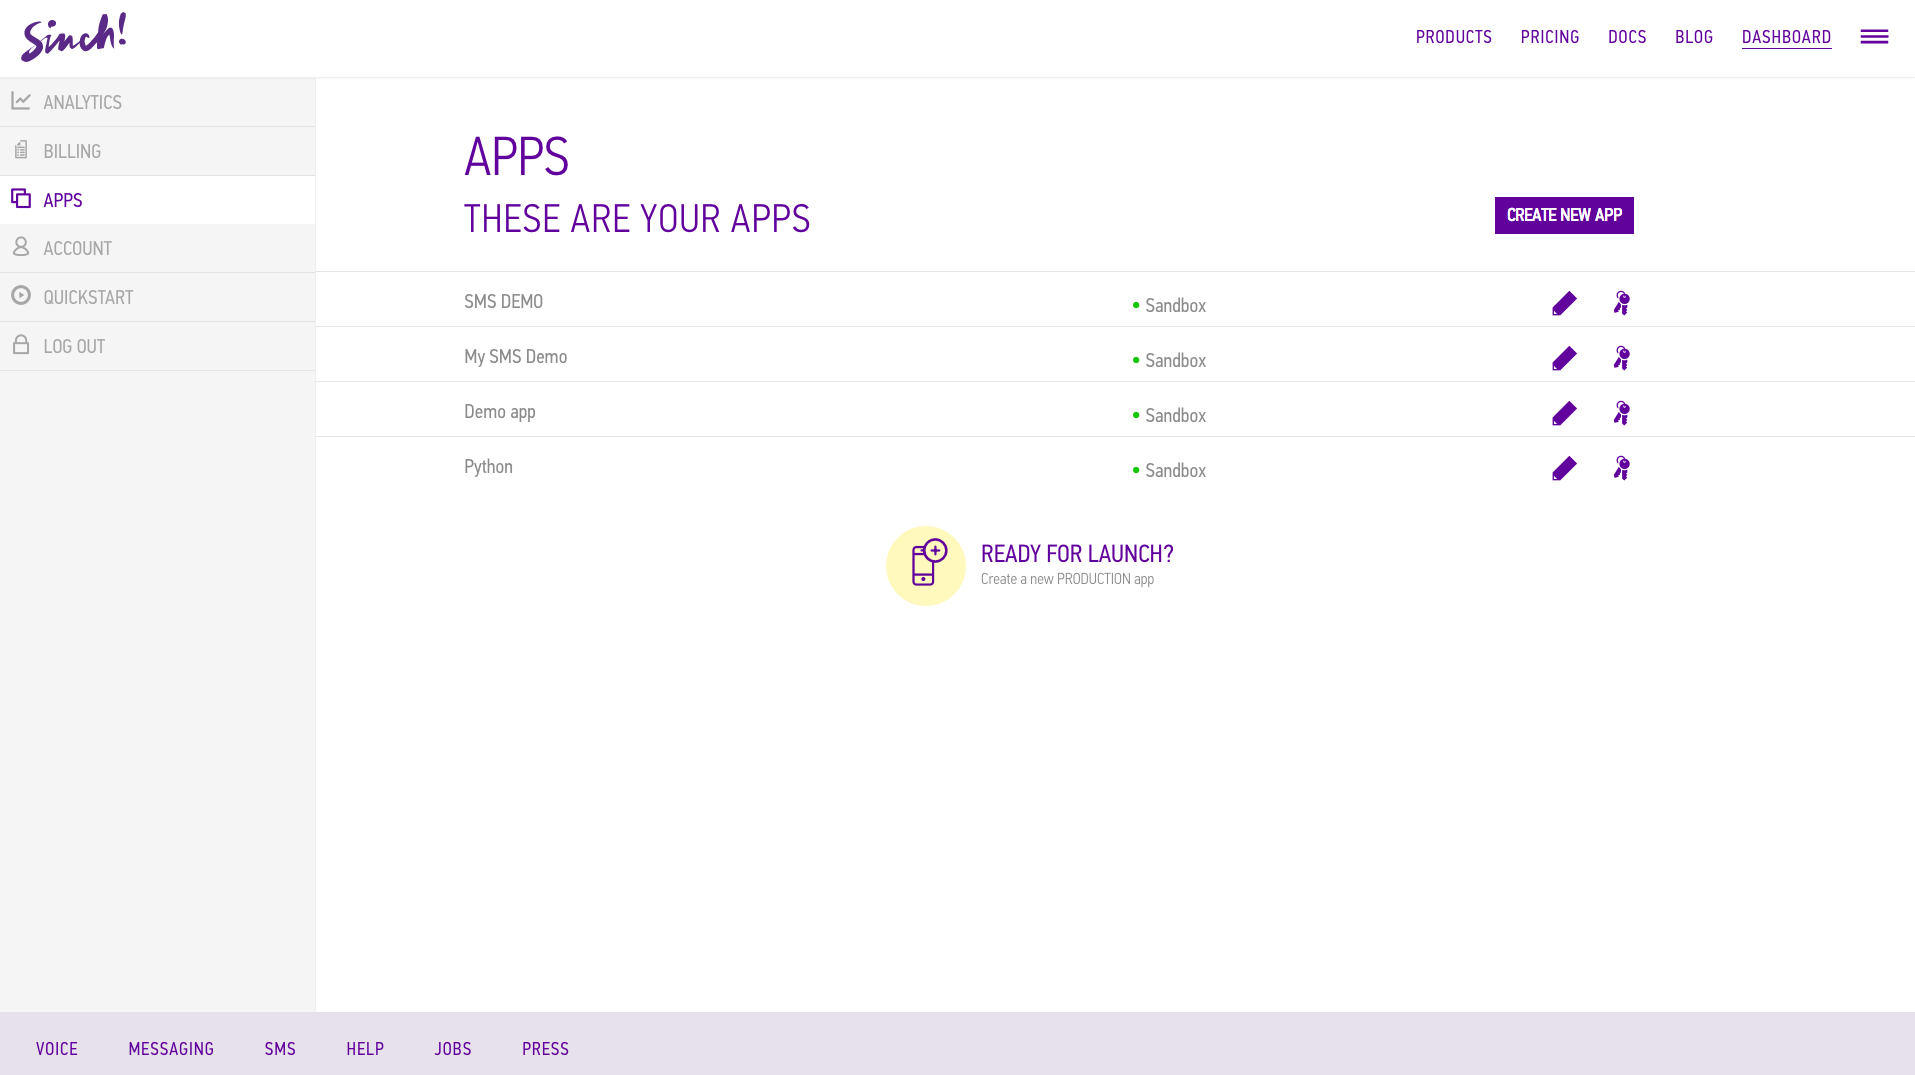 Sinch Demo - Easy to use app builder